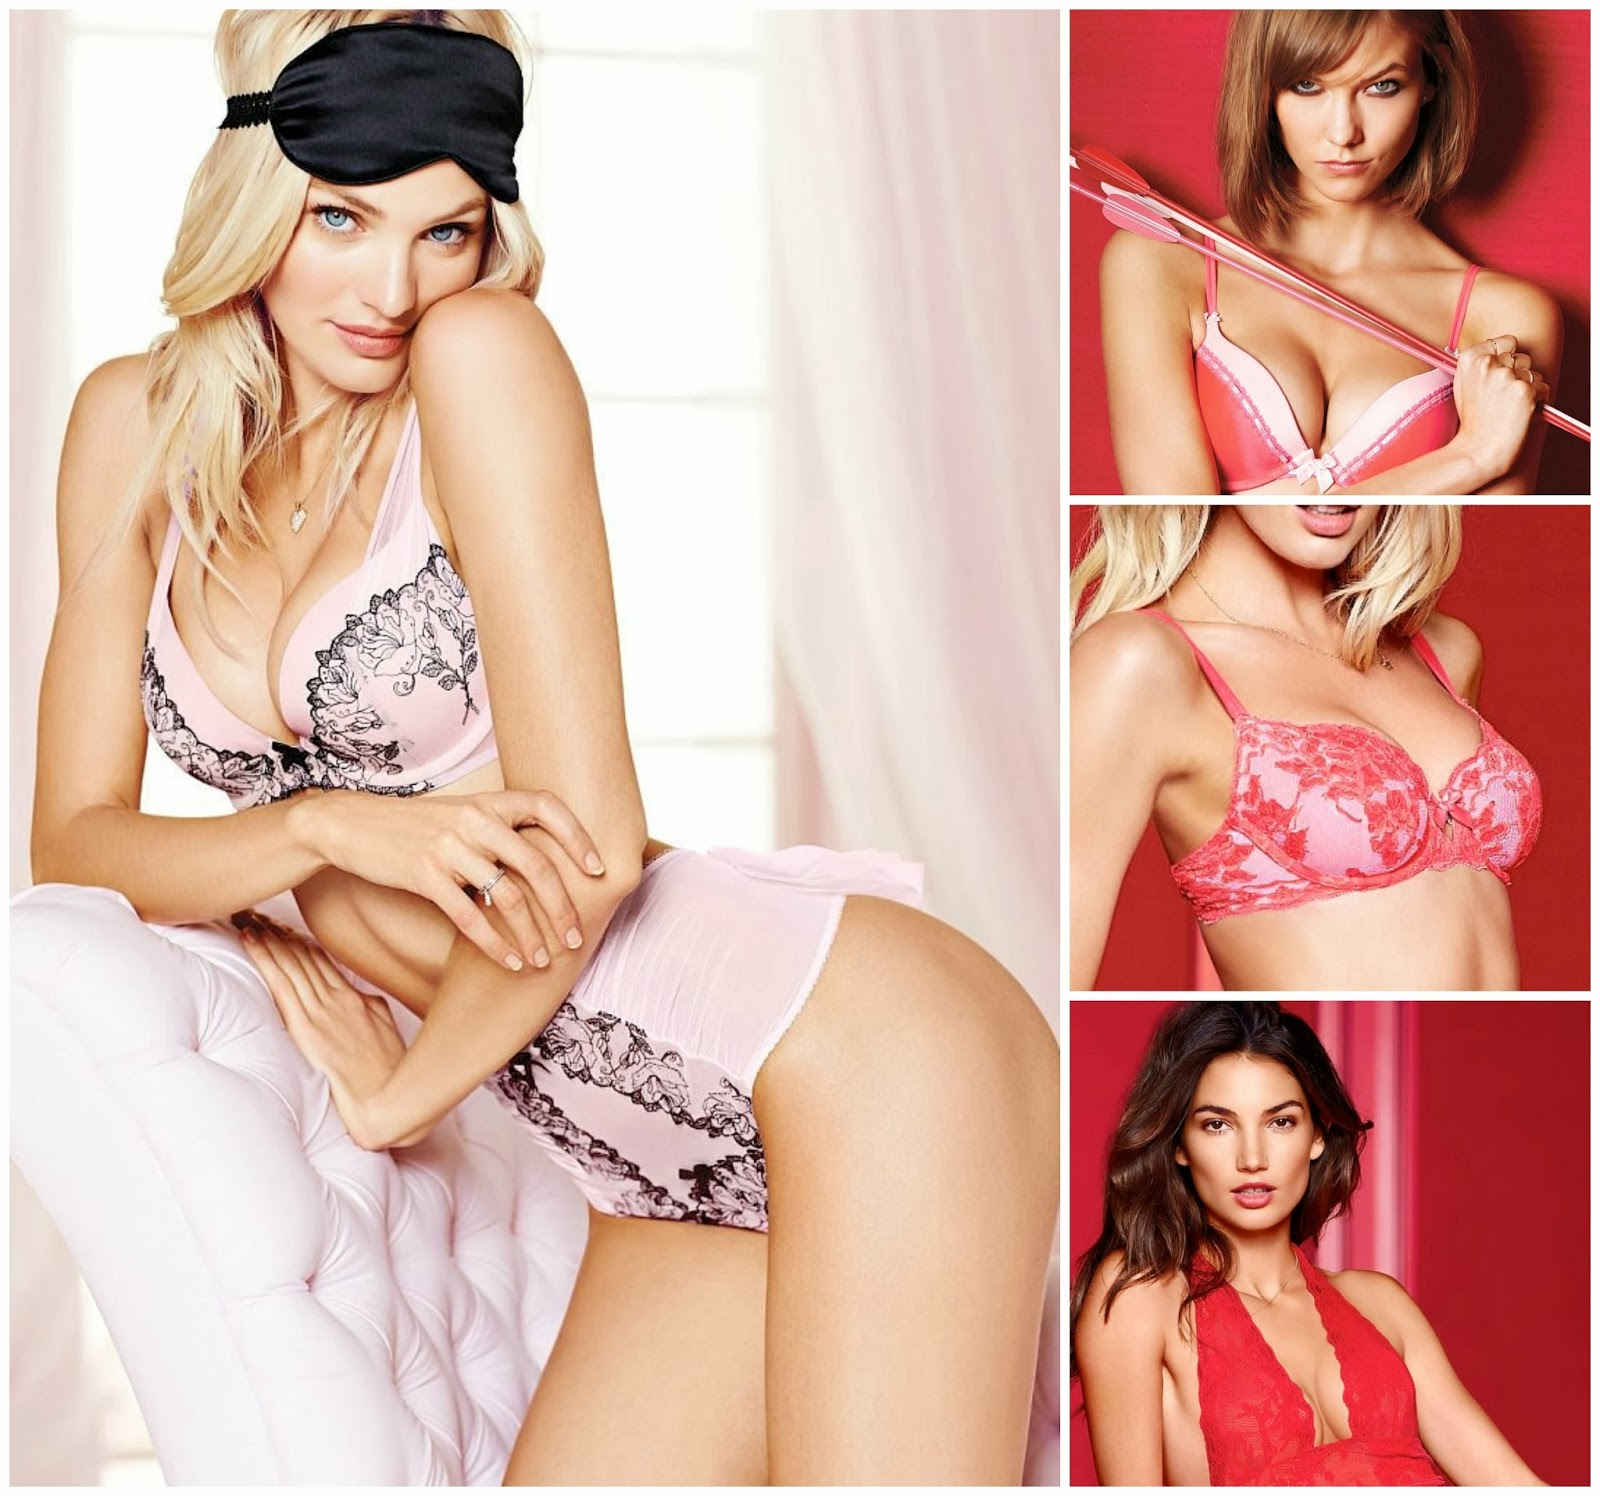 http://www.syriouslyinfashion.com/2014/02/victorias-secret-st-valentines-day.html